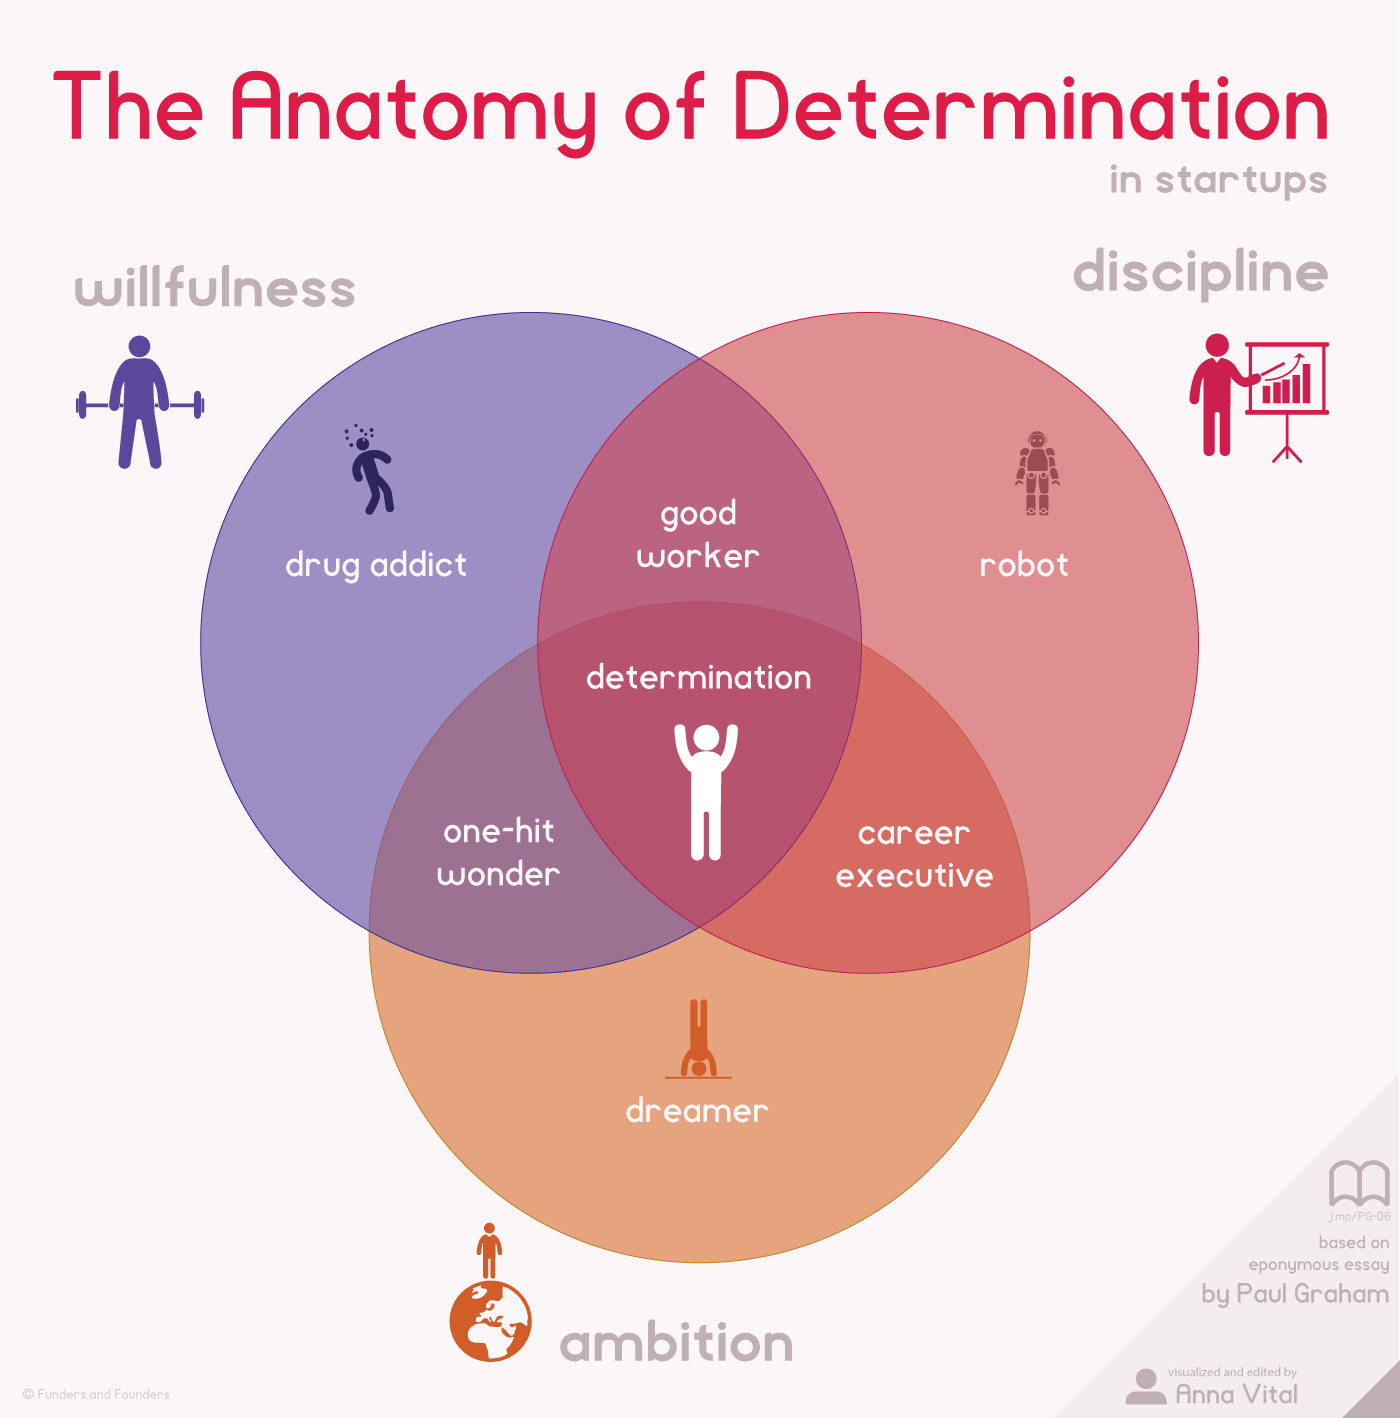 the anatomy of determination in startups infographic chart the anatomy of determination in startups